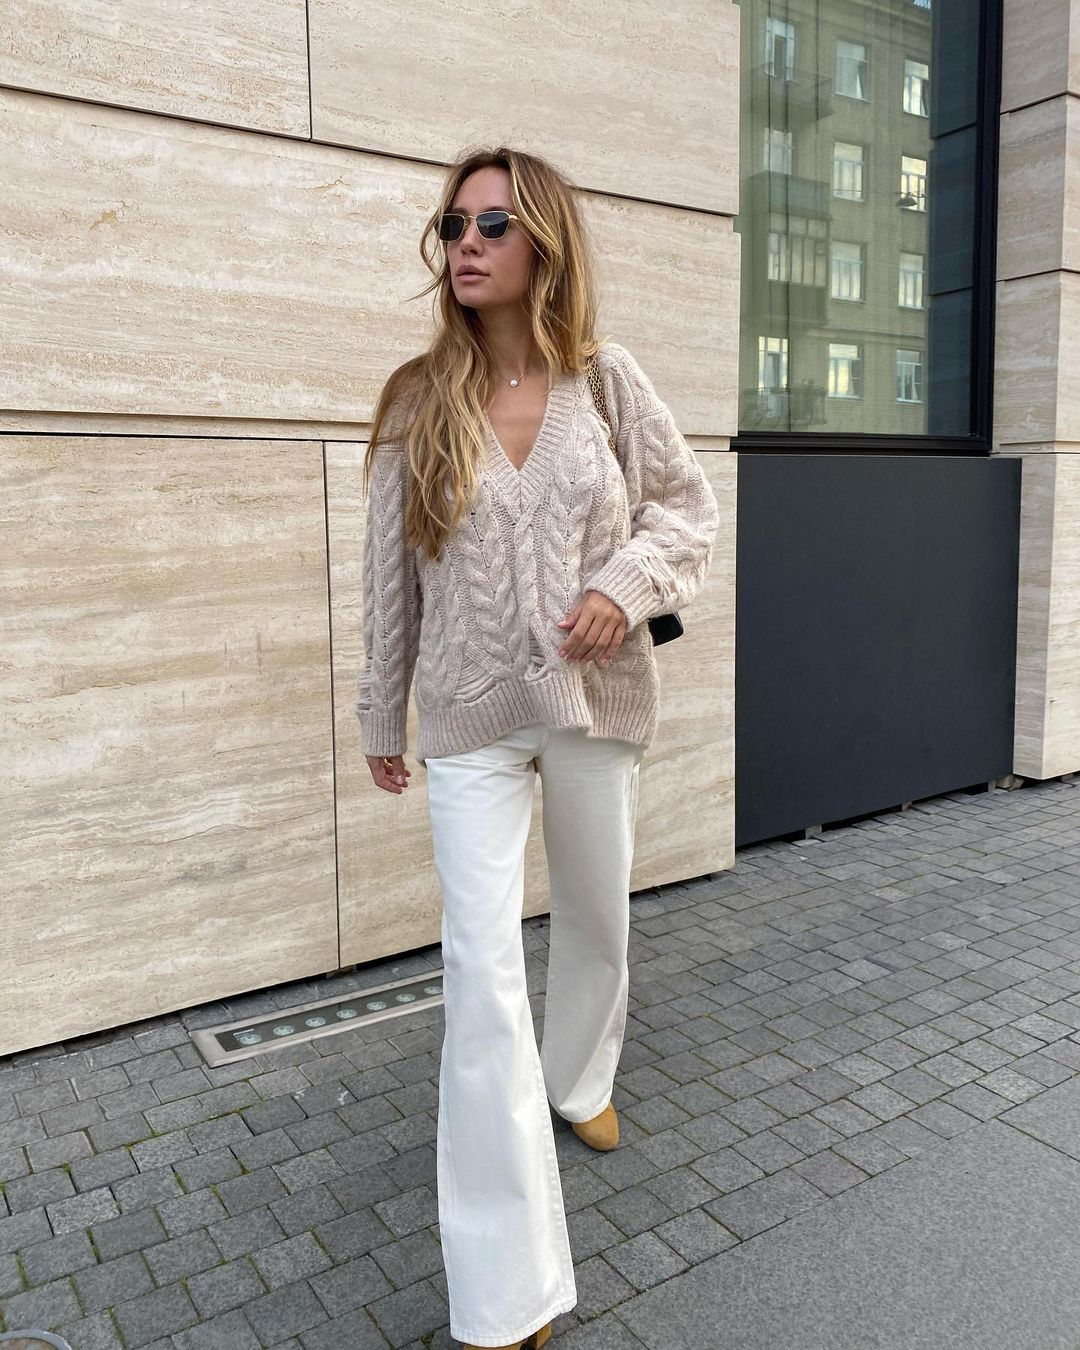 A Neutral Sweater is a Fall/Winter Must-Buy